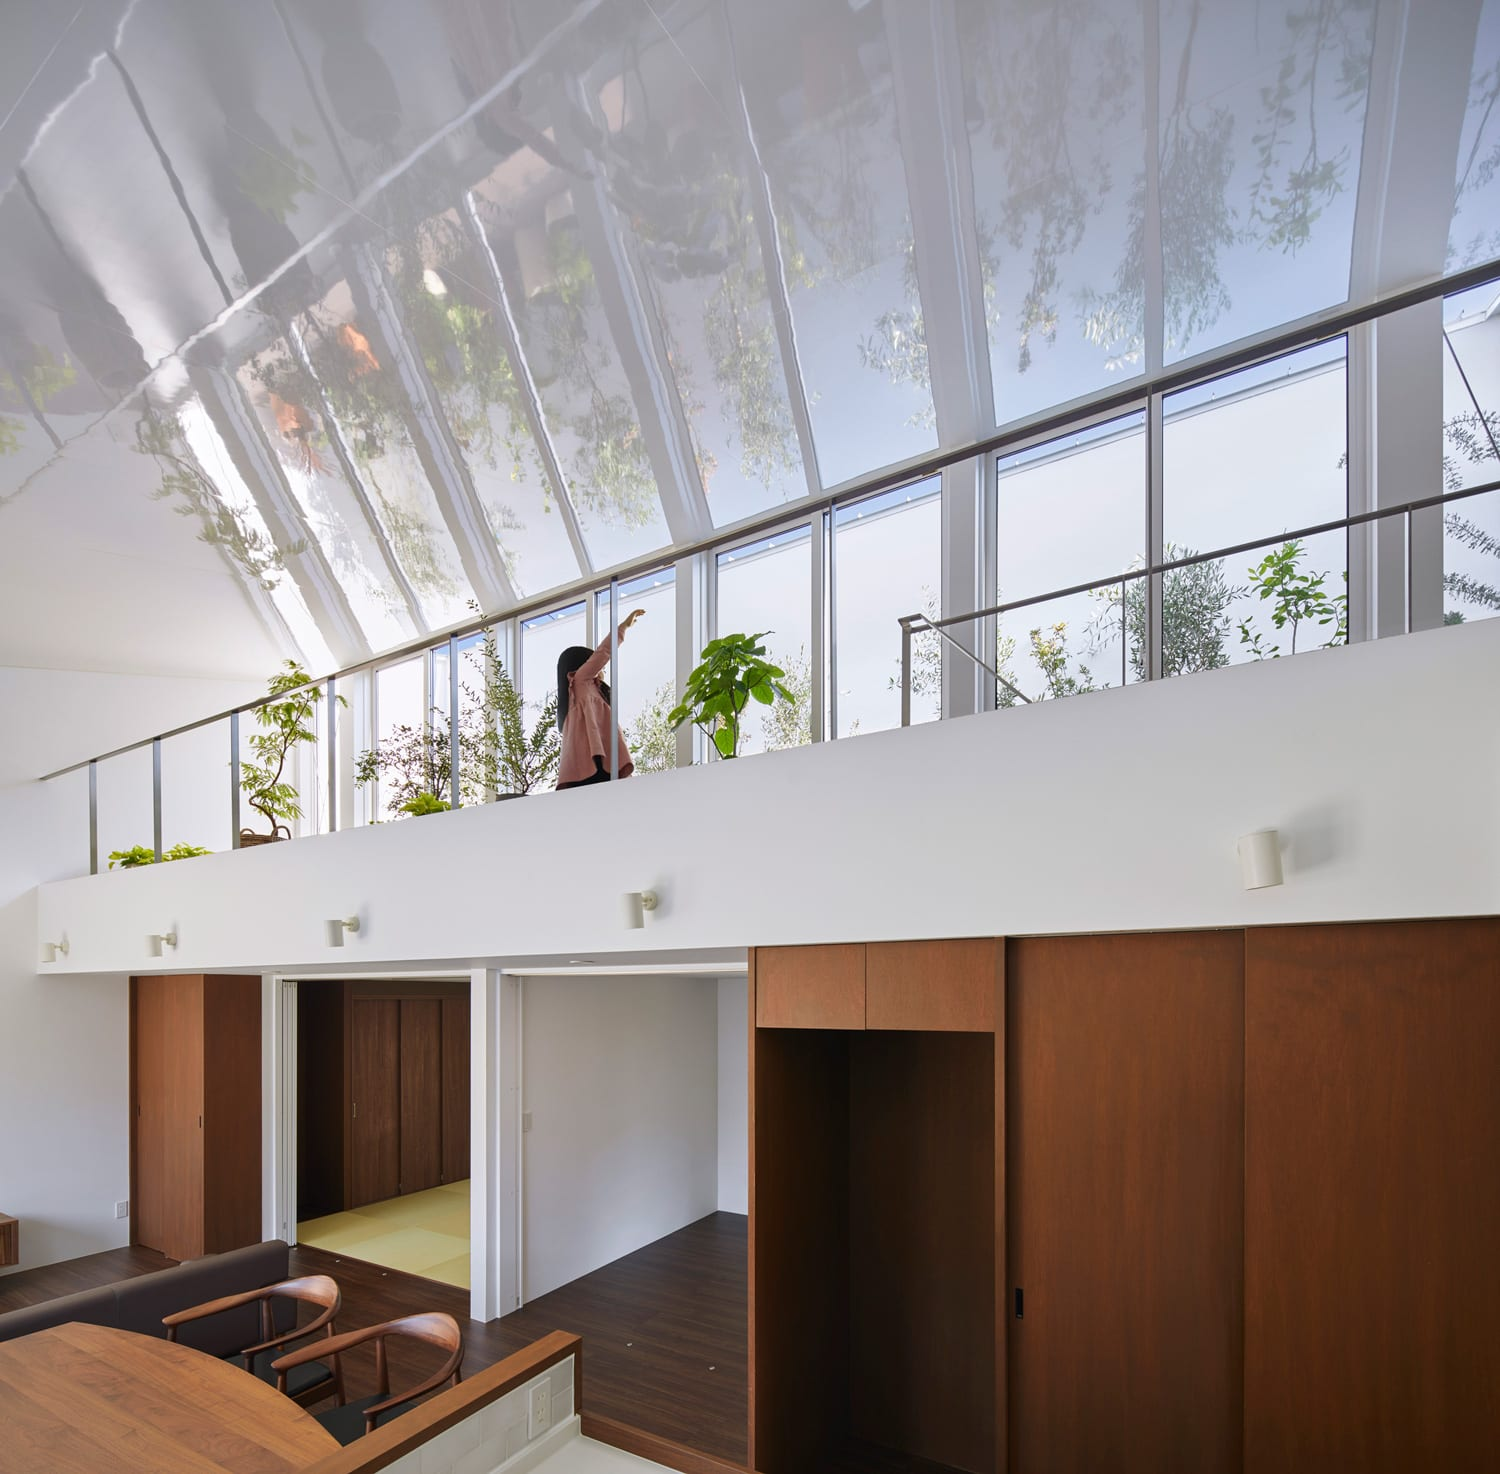 House with Plants in Japan by KamakuraStudio | Yellowtrace